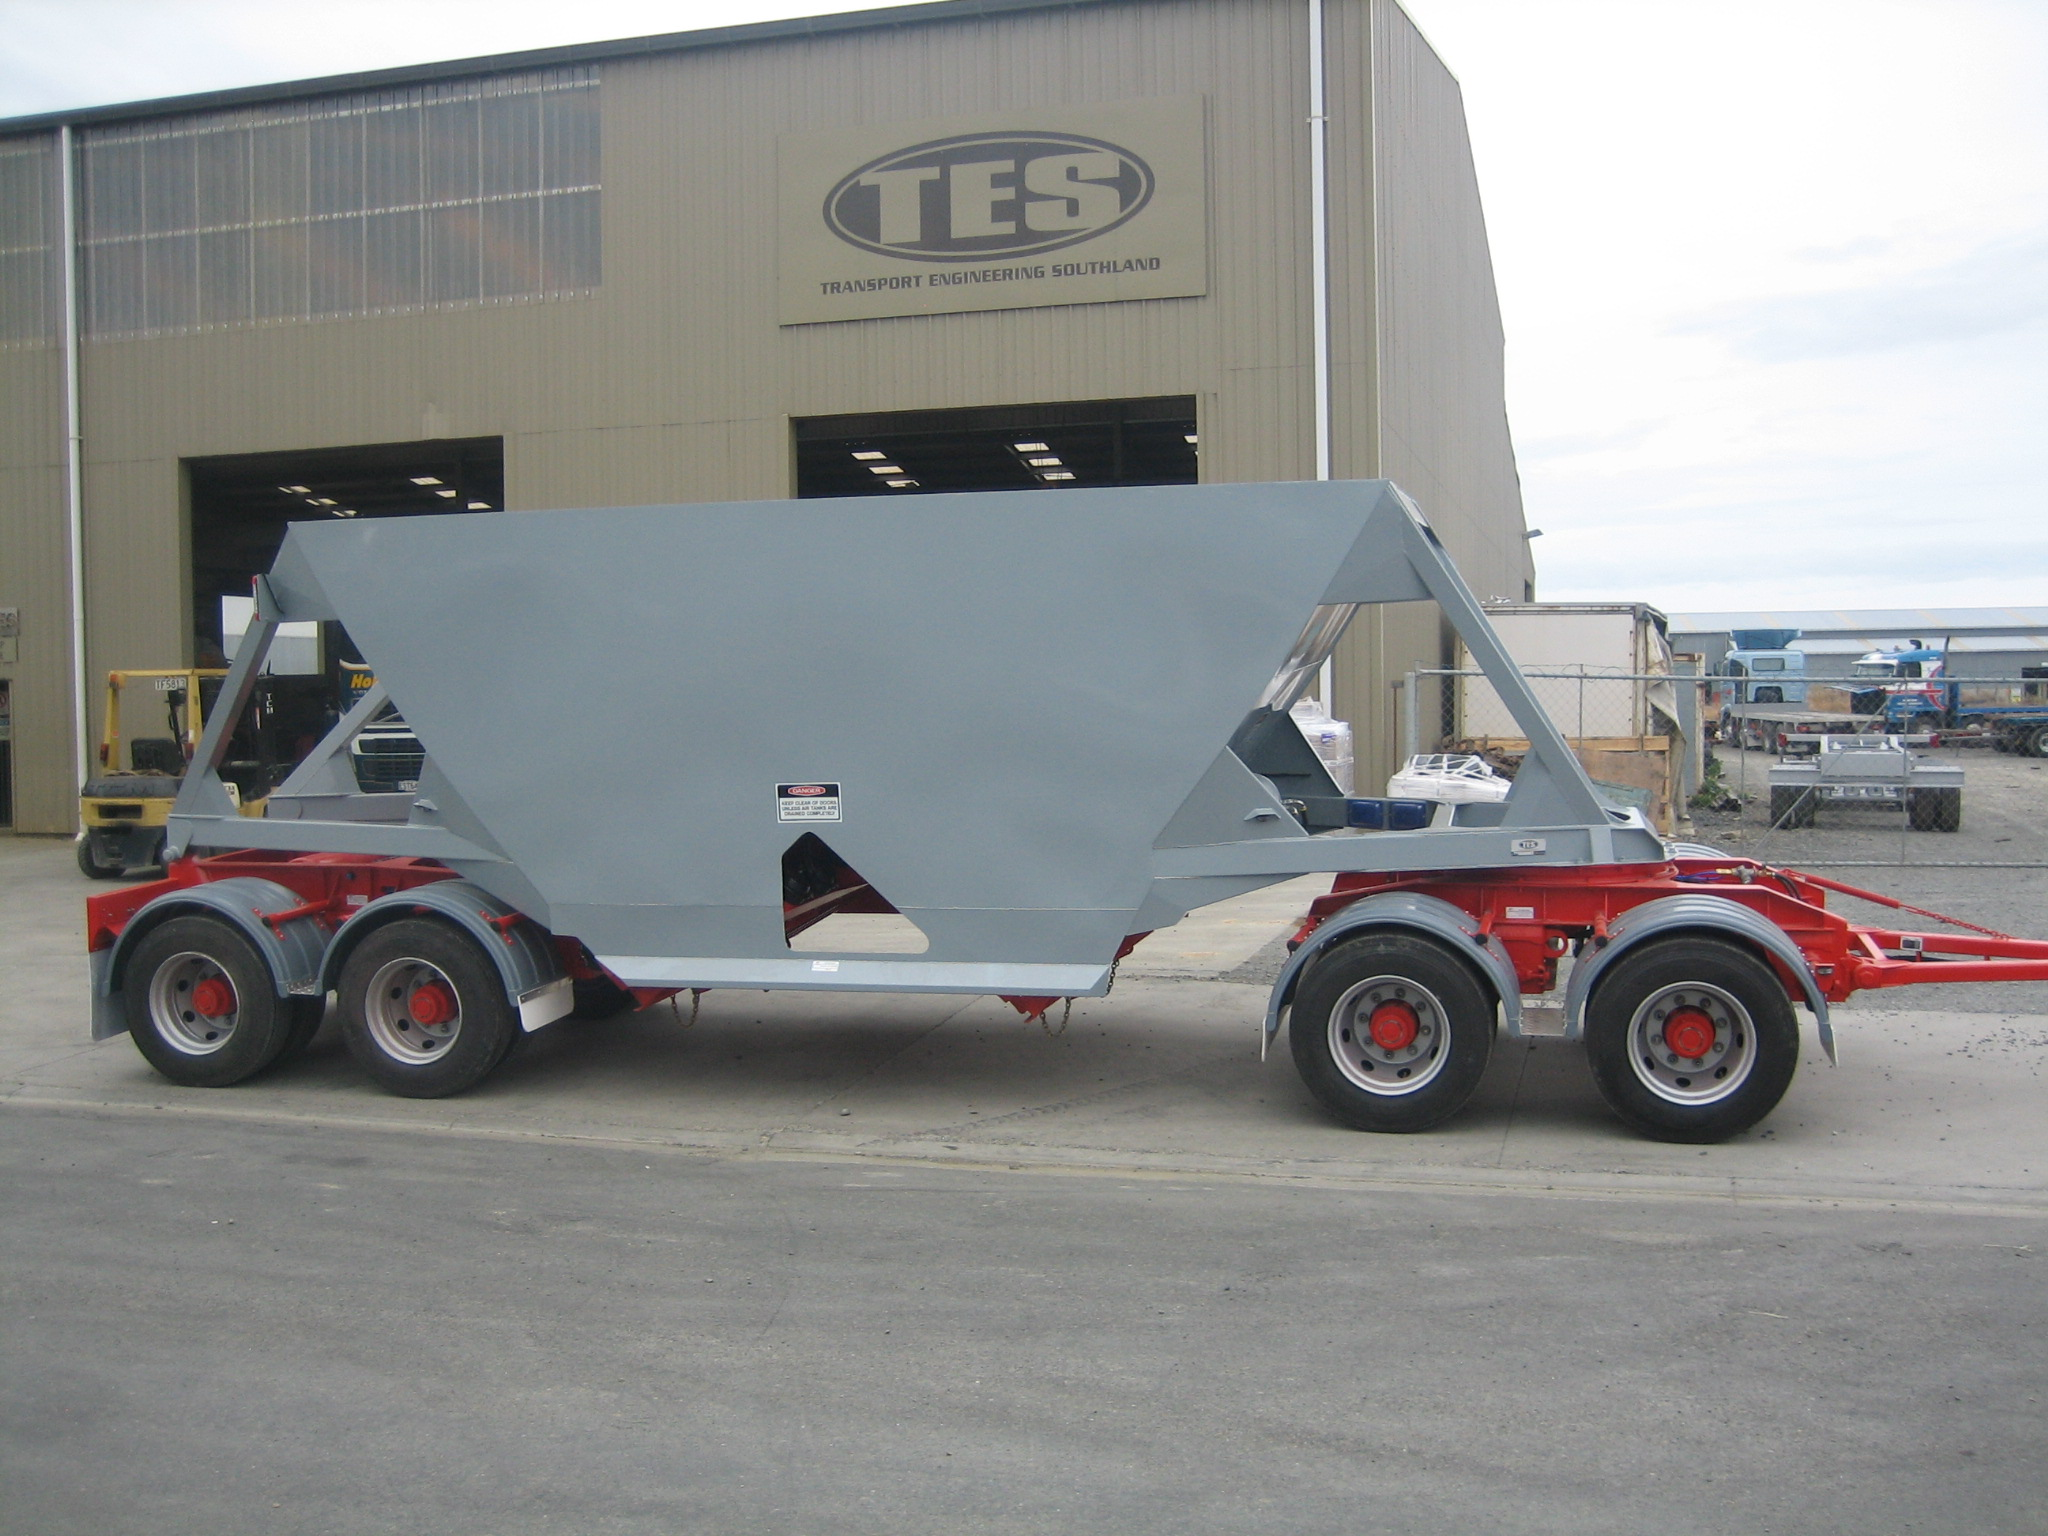 TES - Transport Engineering Southland | Belly/Bottom Dumper - Four Axle Pull